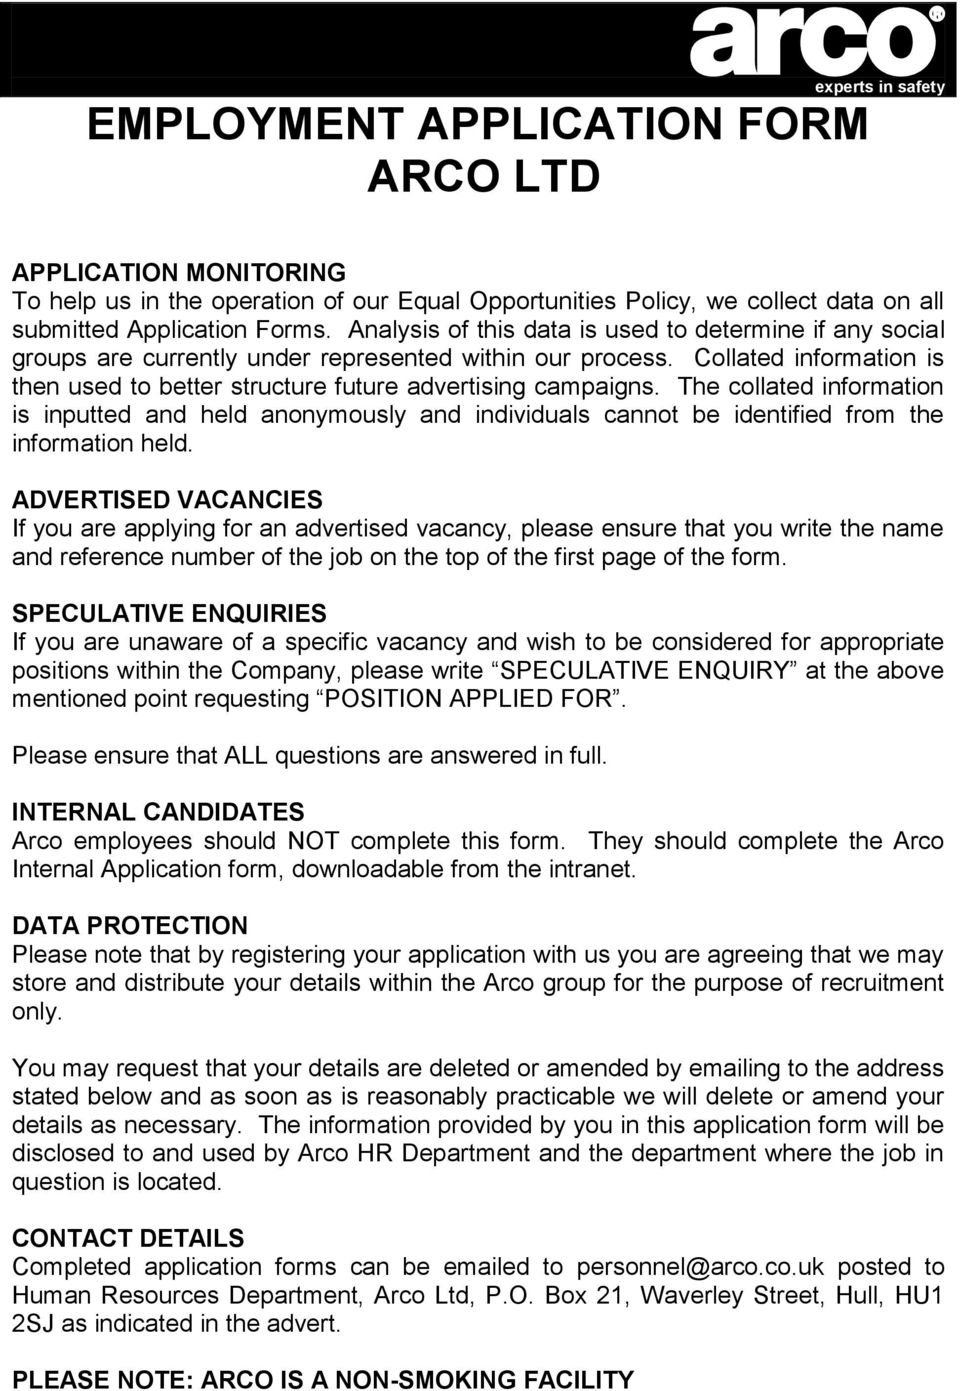 experts in safety employment application form arco ltd pdf